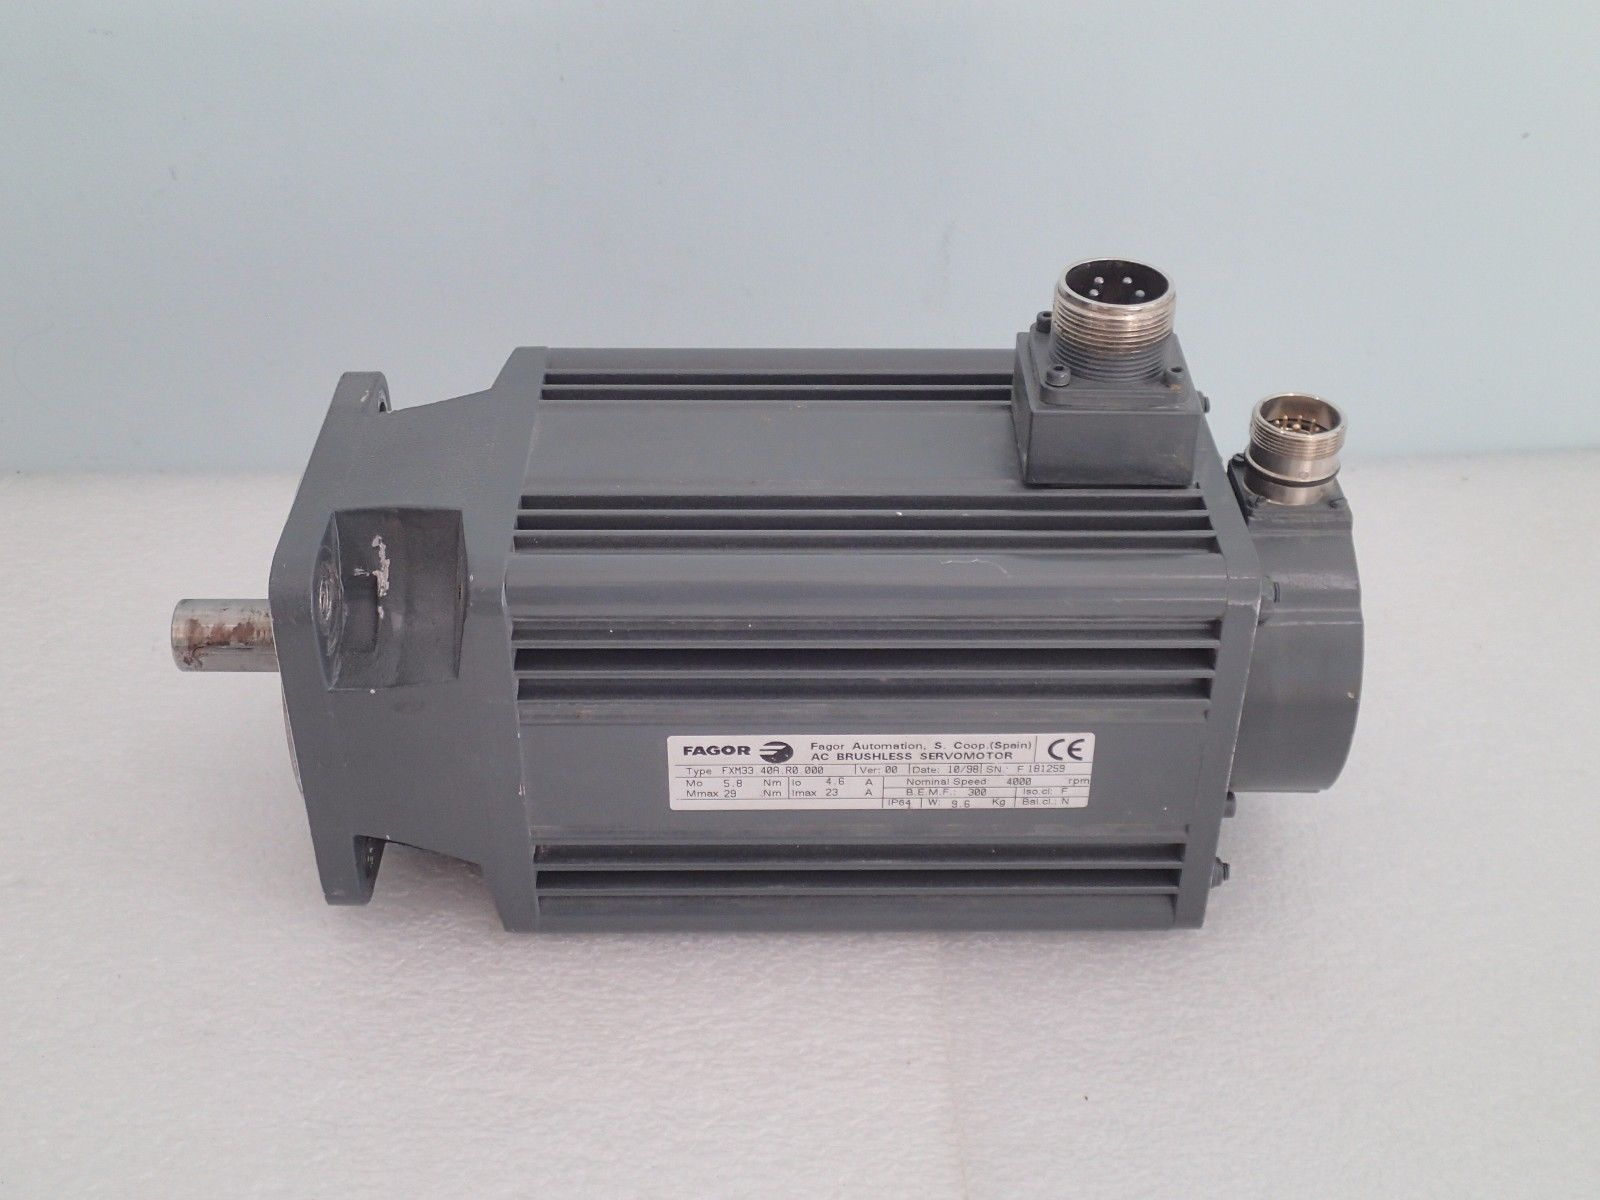 Warranty Fagor Ac Brushless Servo Motor and 50 similar items